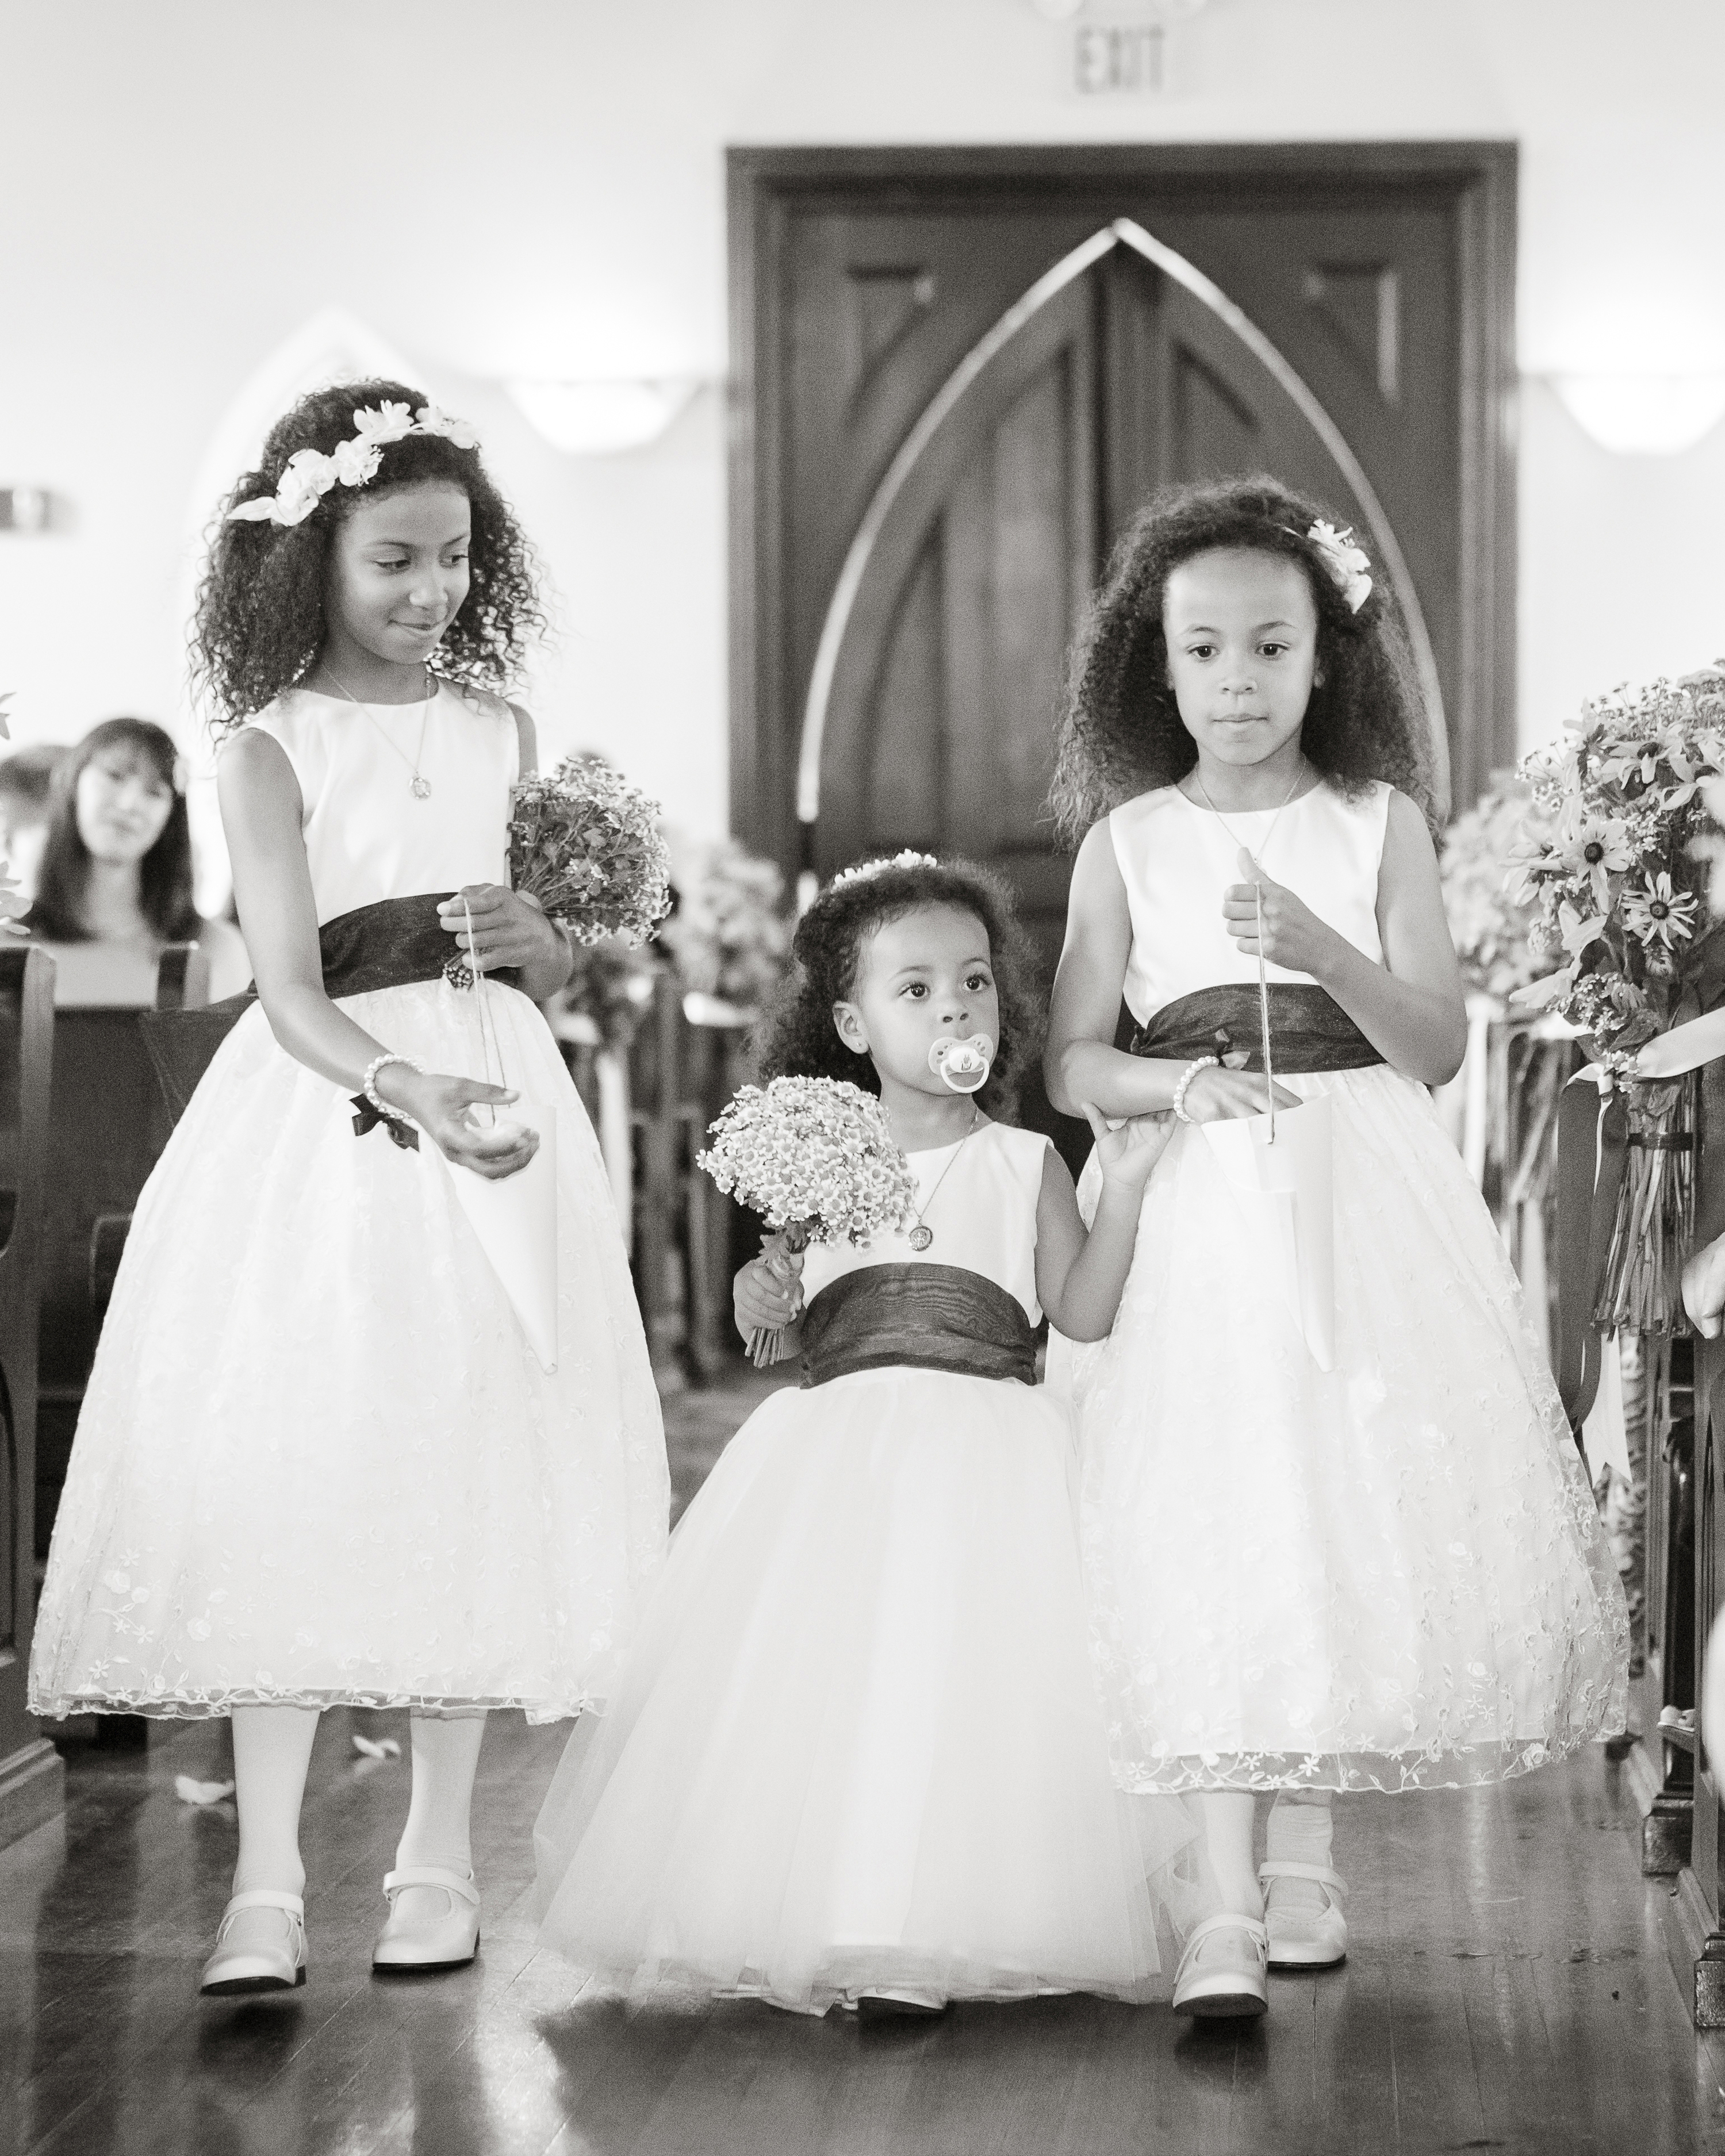 kristel-austin-wedding-flowergirls-0630-s11860-0415.jpg